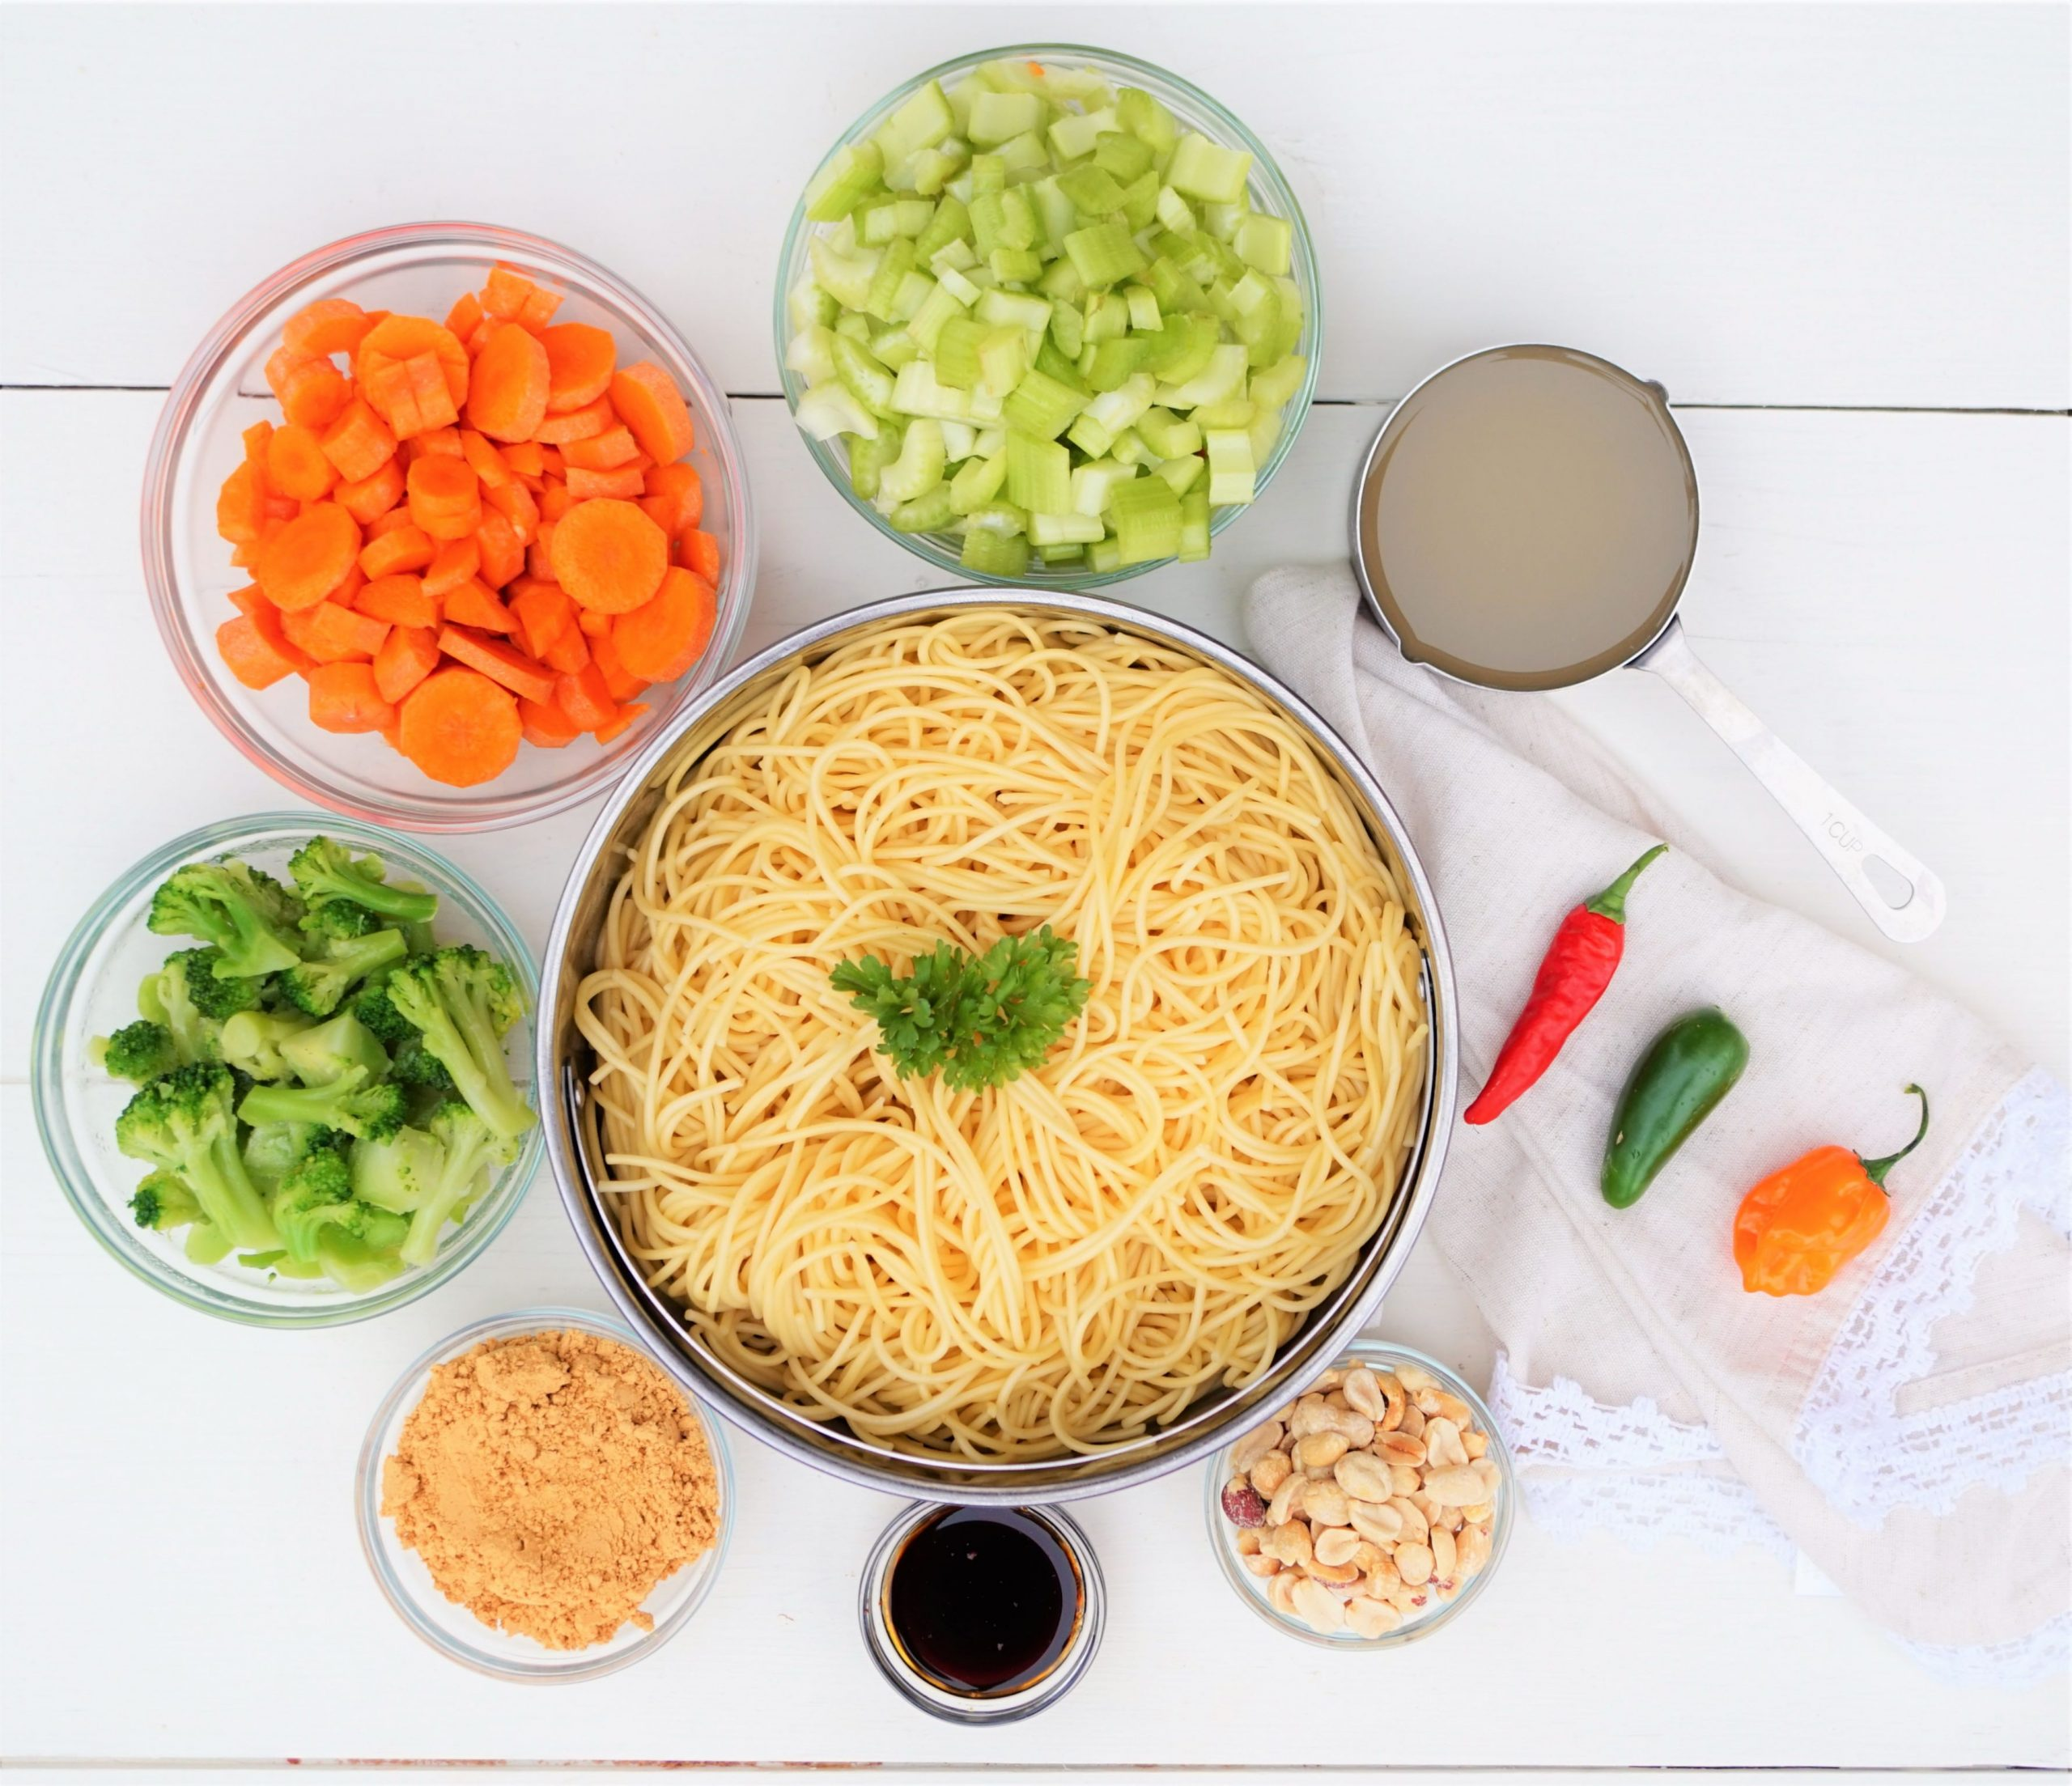 Vegetable Spaghetti Stir Fry with Spicy Peanut Sauce - Recipes Pasta Vegetables